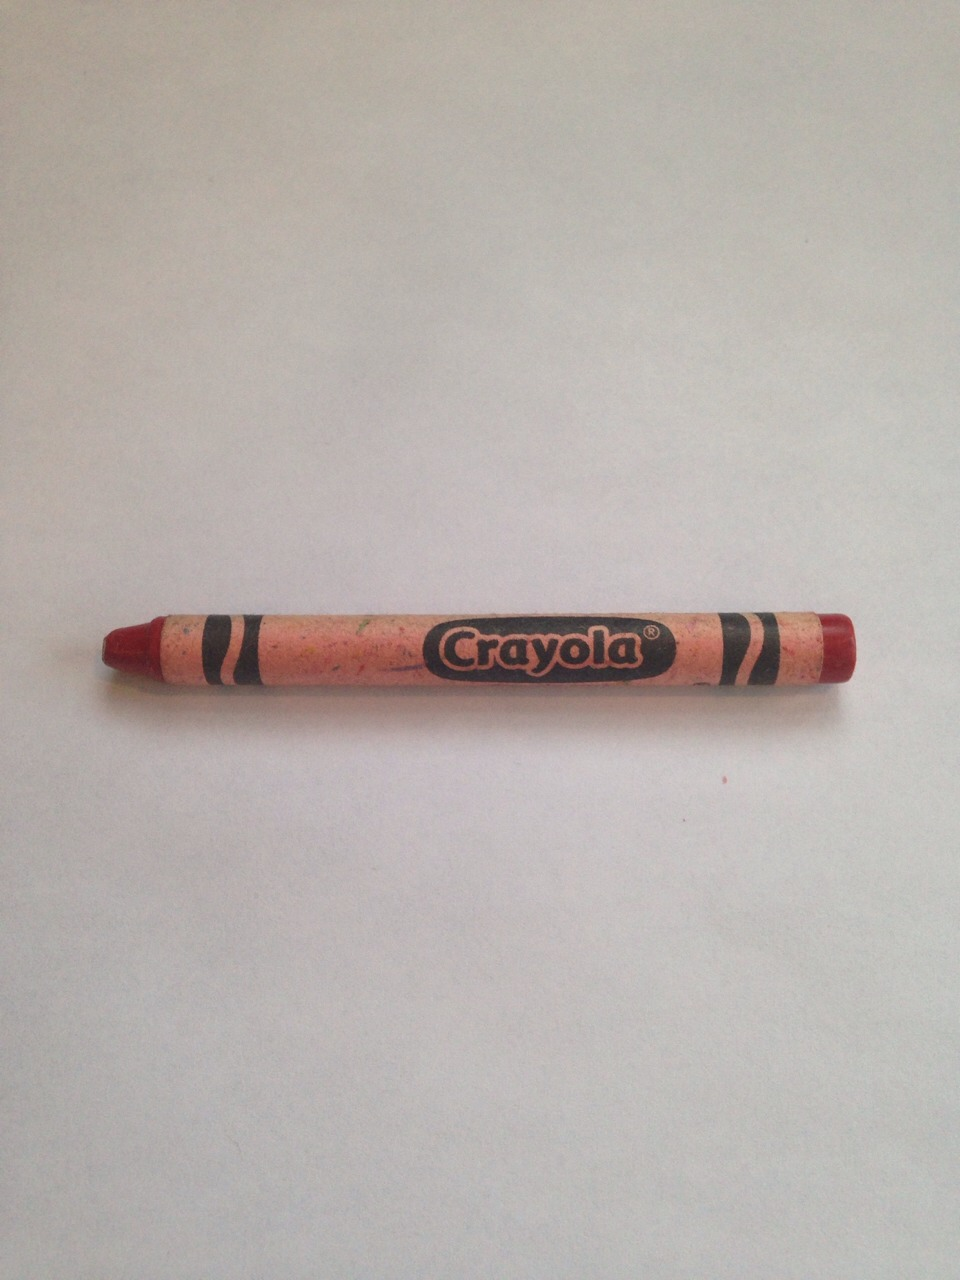 Pick any crayola crayon color